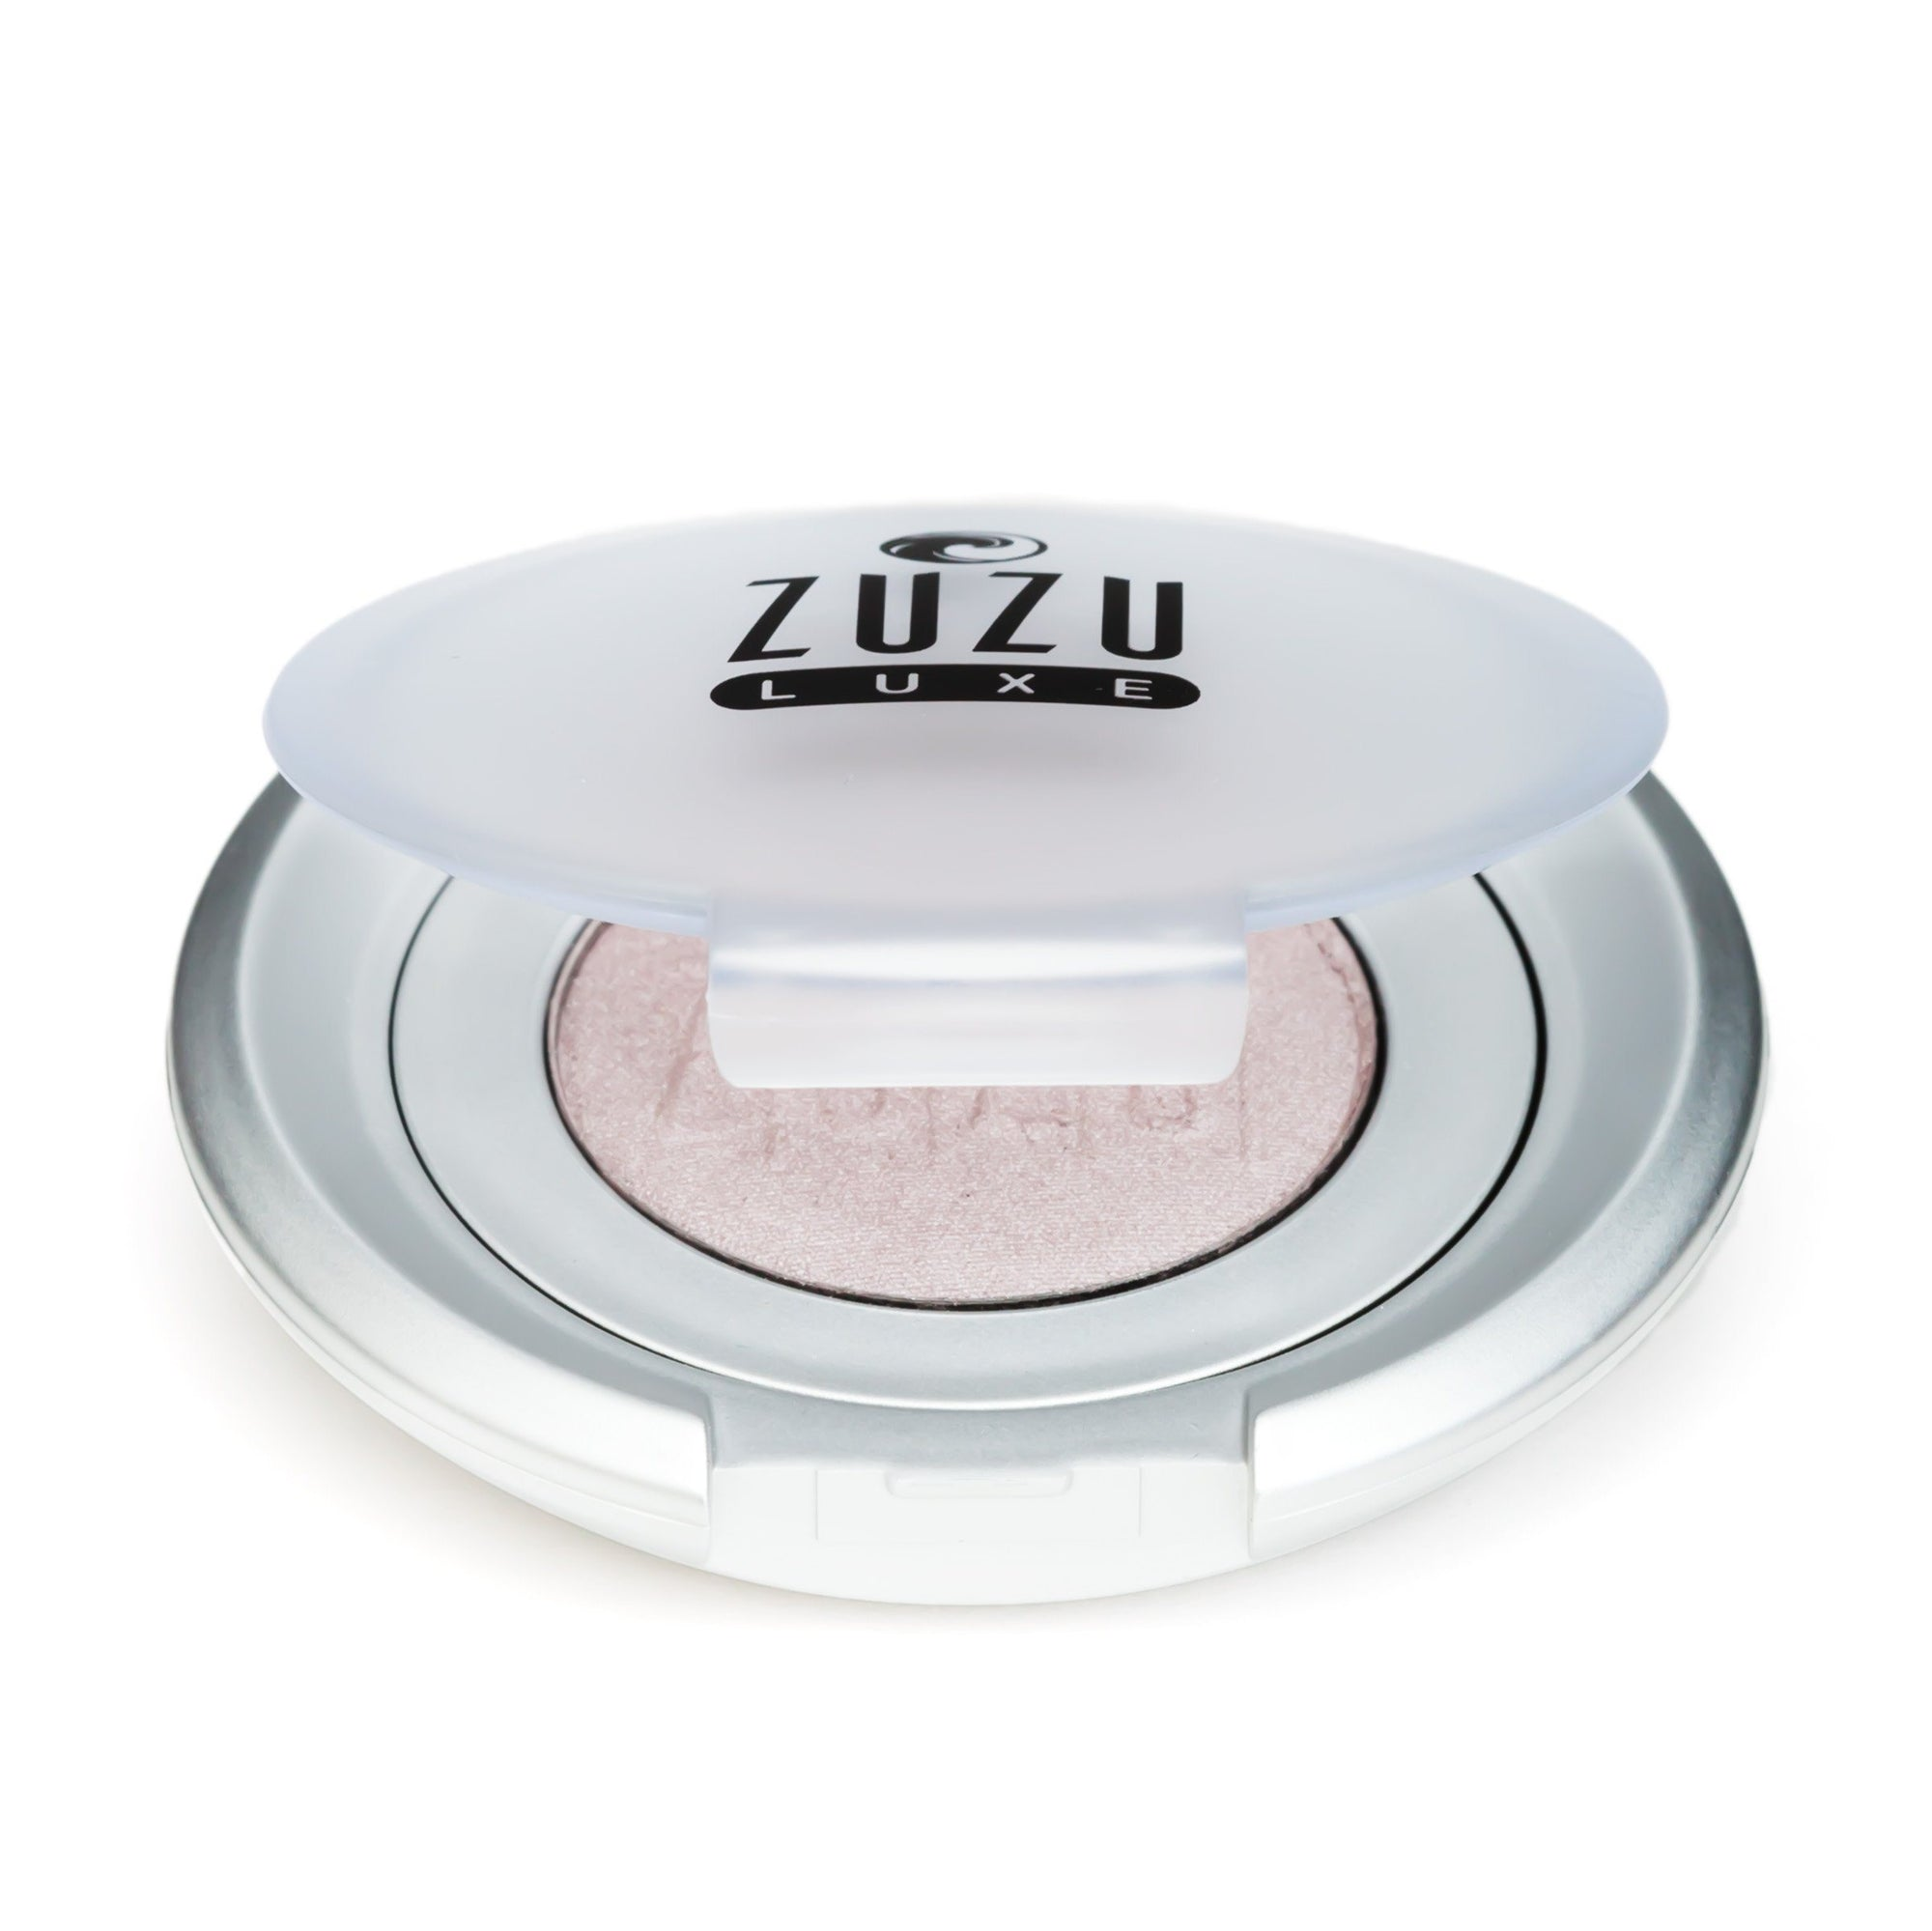 Beauty & Skin Care - Zuzu Luxe - Vegan Eyeshadow, Prism